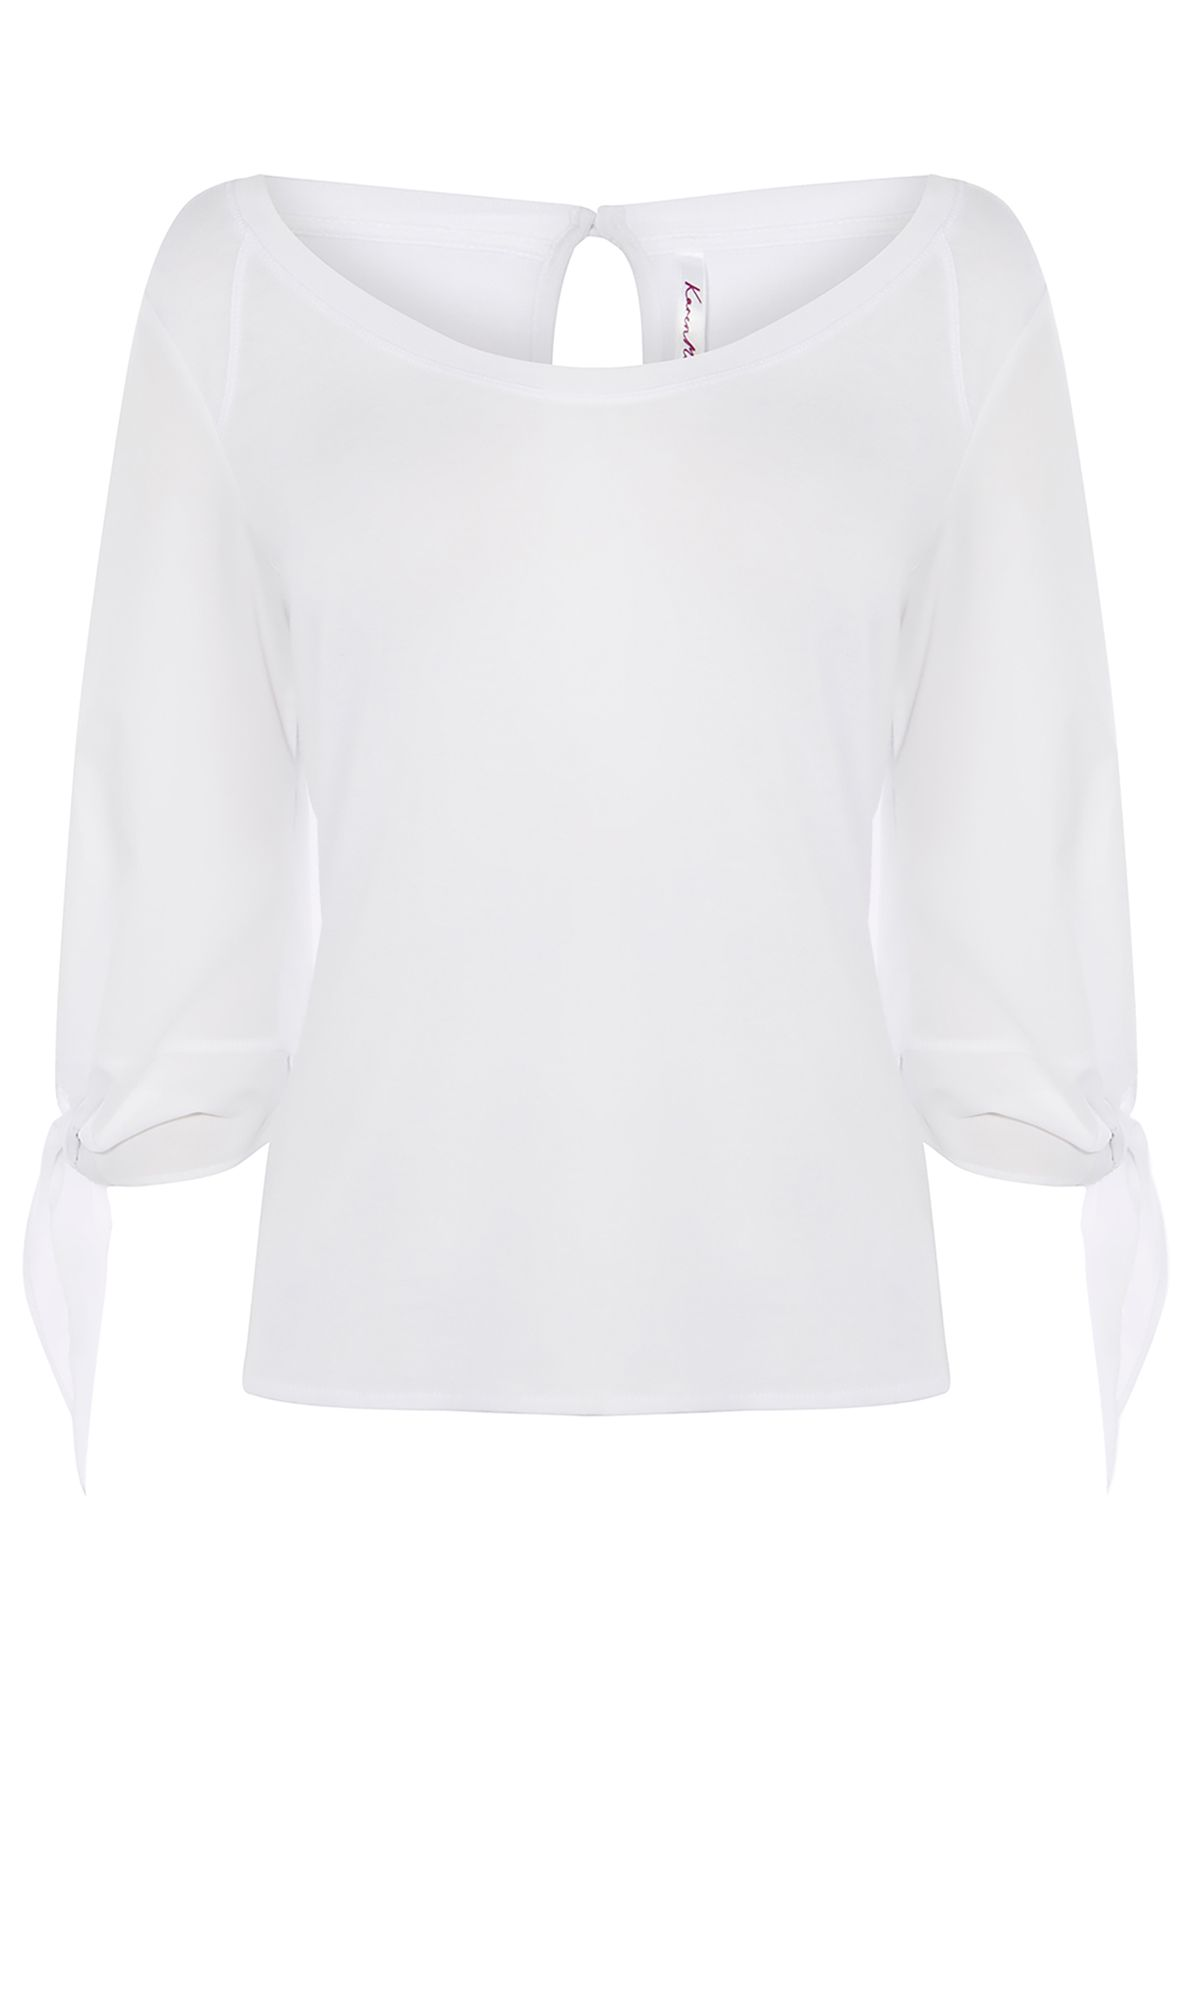 Karen Millen White Tie Sleeve Top, White